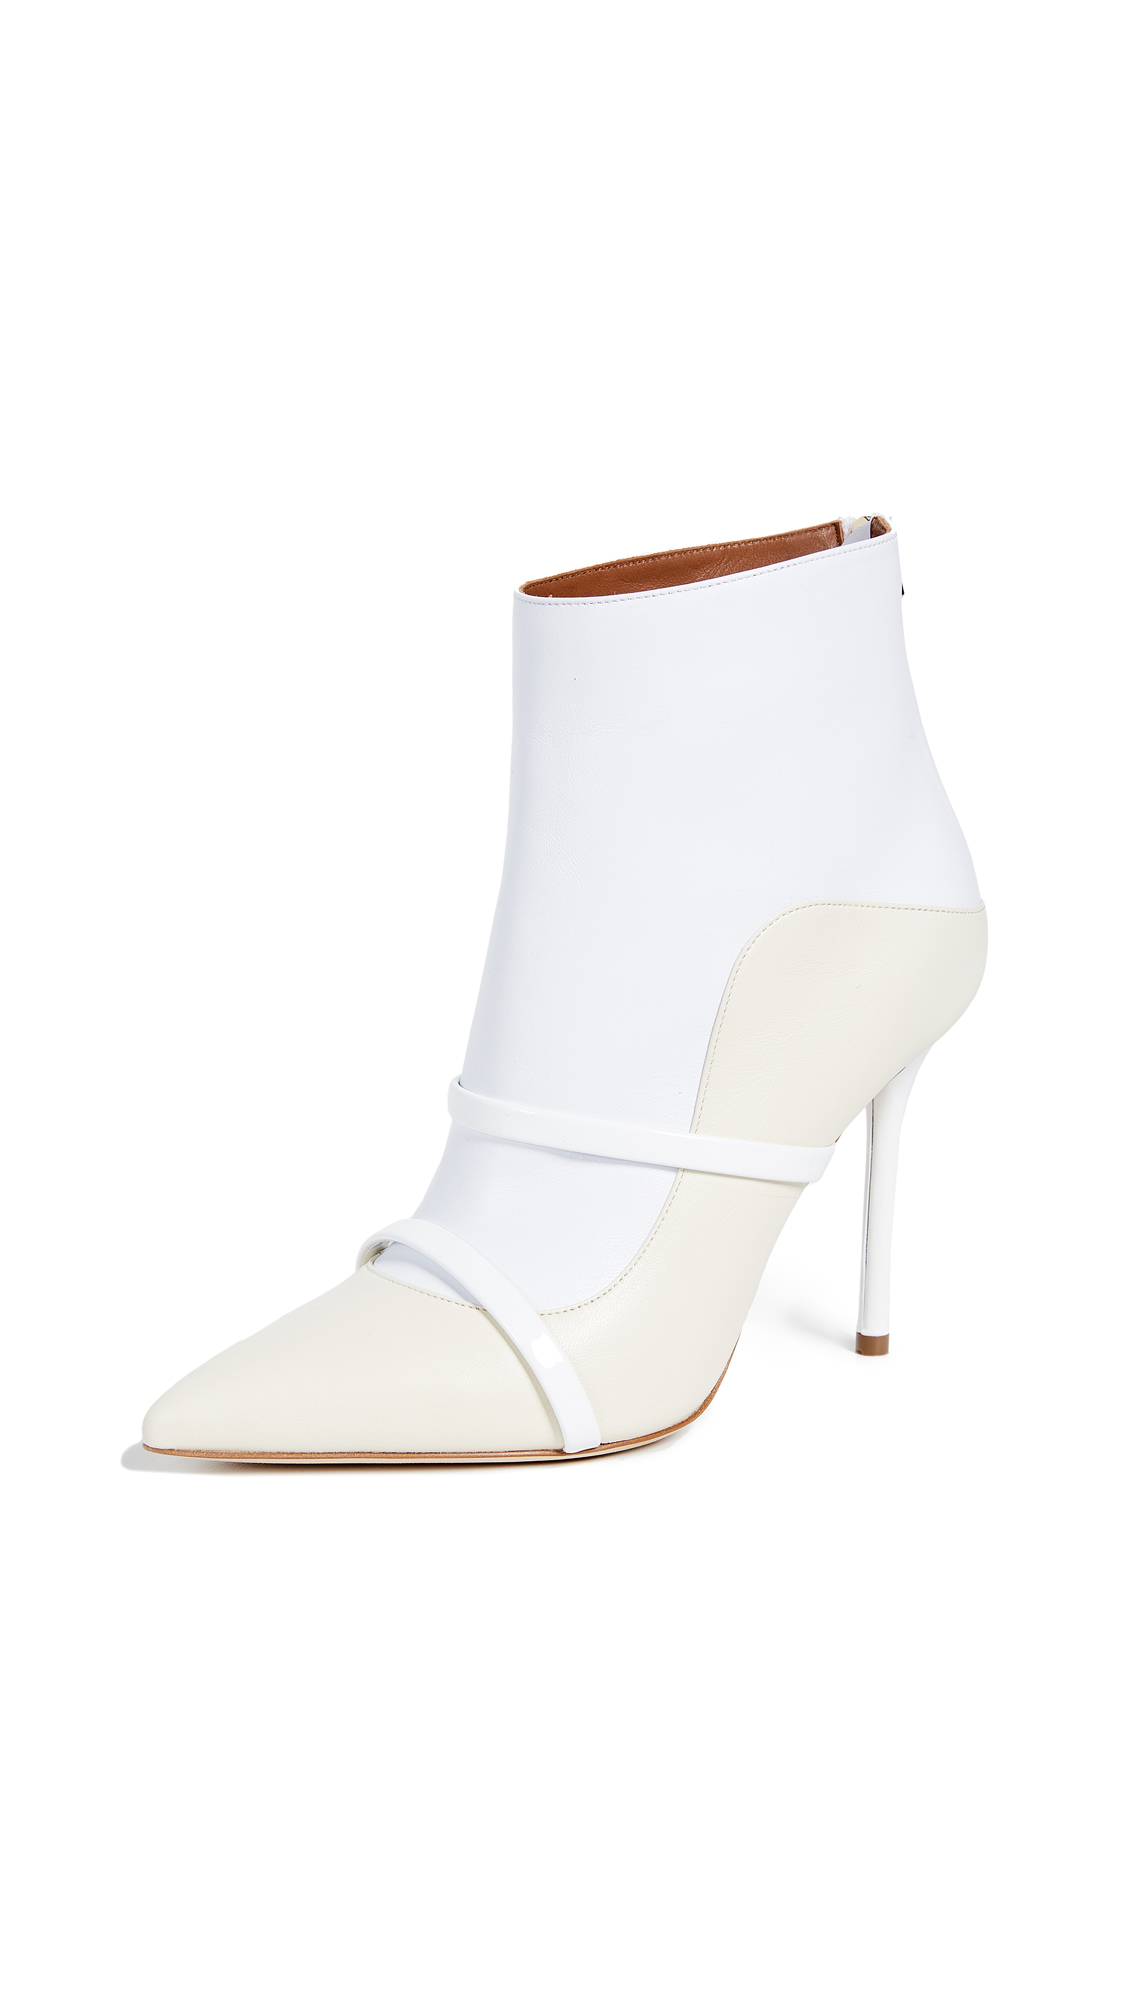 Malone Souliers by Roy Luwolt Madison Booties - White/Ivory